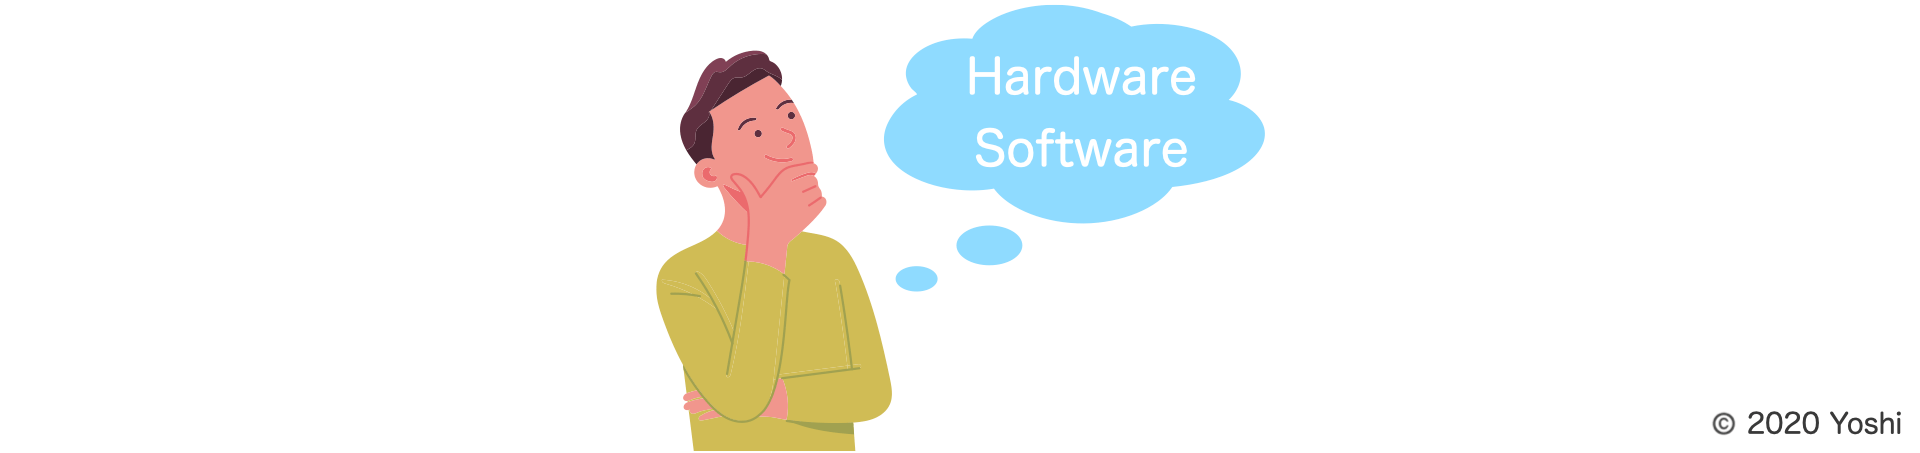 what do you imagine from hardware and software